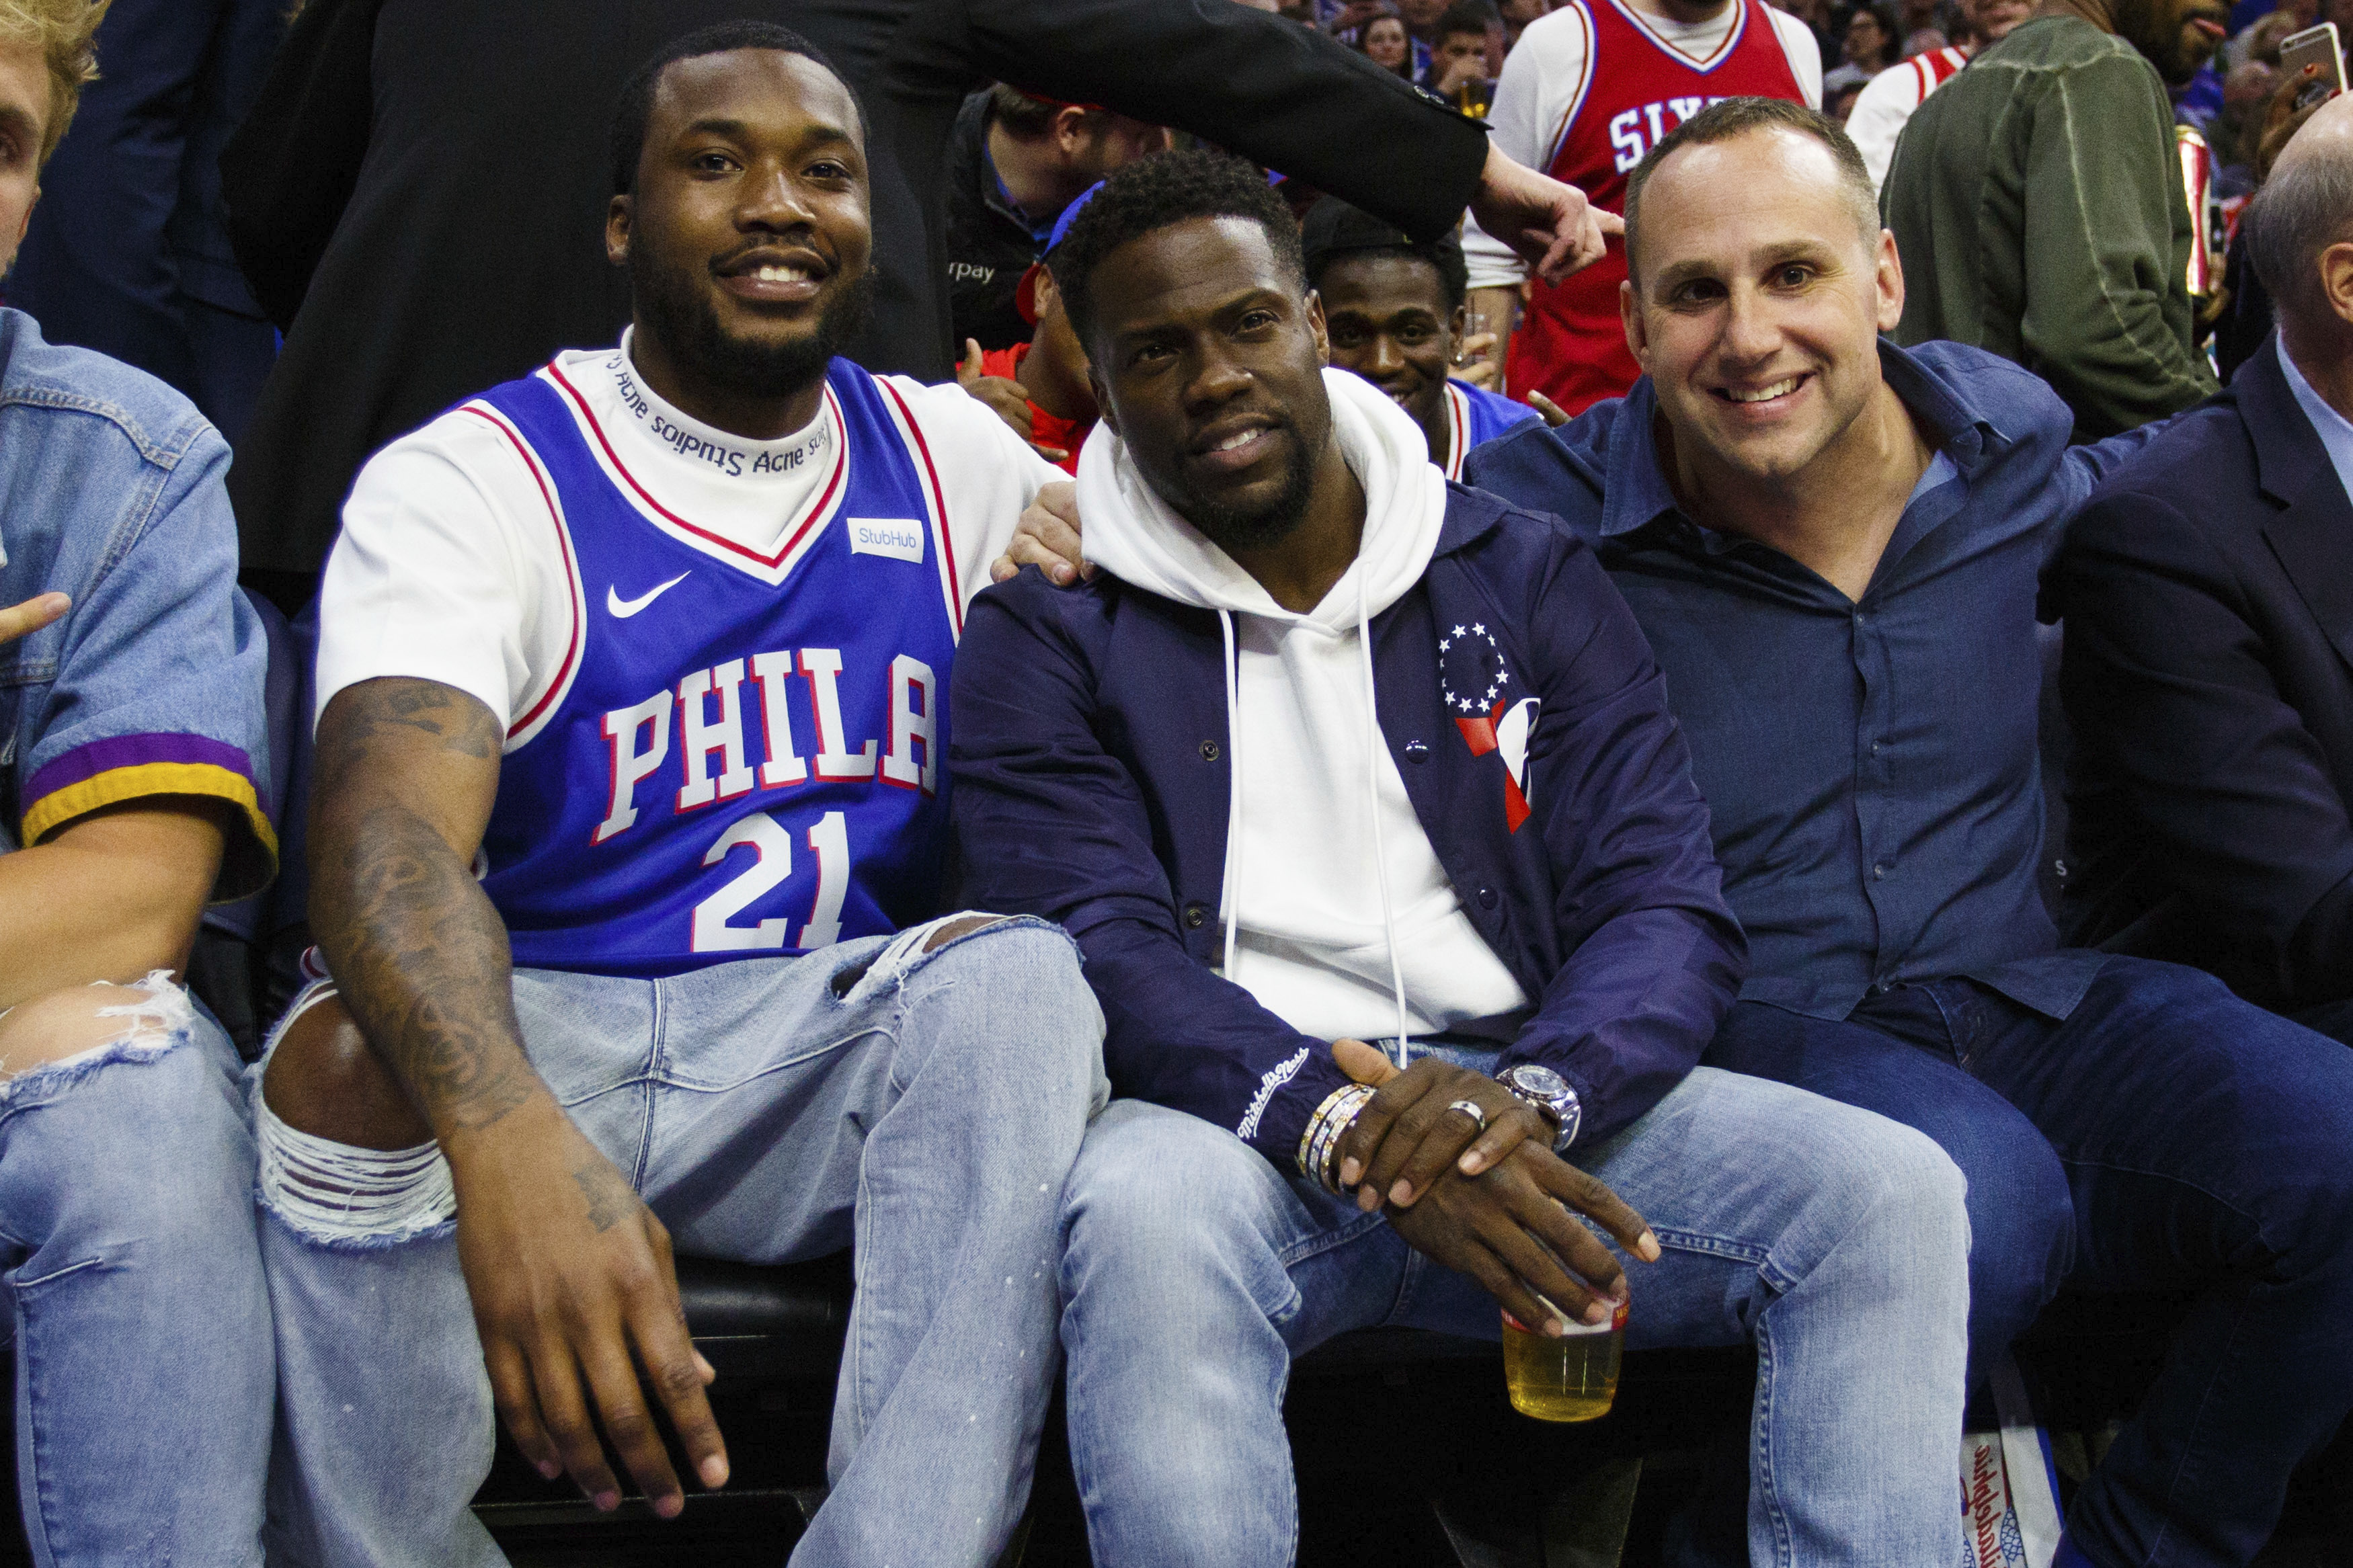 Rapper Meek Mill, left, looks on with actor Kevin Hart, center, and 76ers´ co-owner Michael Rubin, right, during the first half in Game 5 of a first-round NBA basketball playoff series between the Miami Heat and the Philadelphia 76ers, Tuesday, April 24, 2018, in Philadelphia. The 76ers won 104-91. (AP Photo/Chris Szagola)